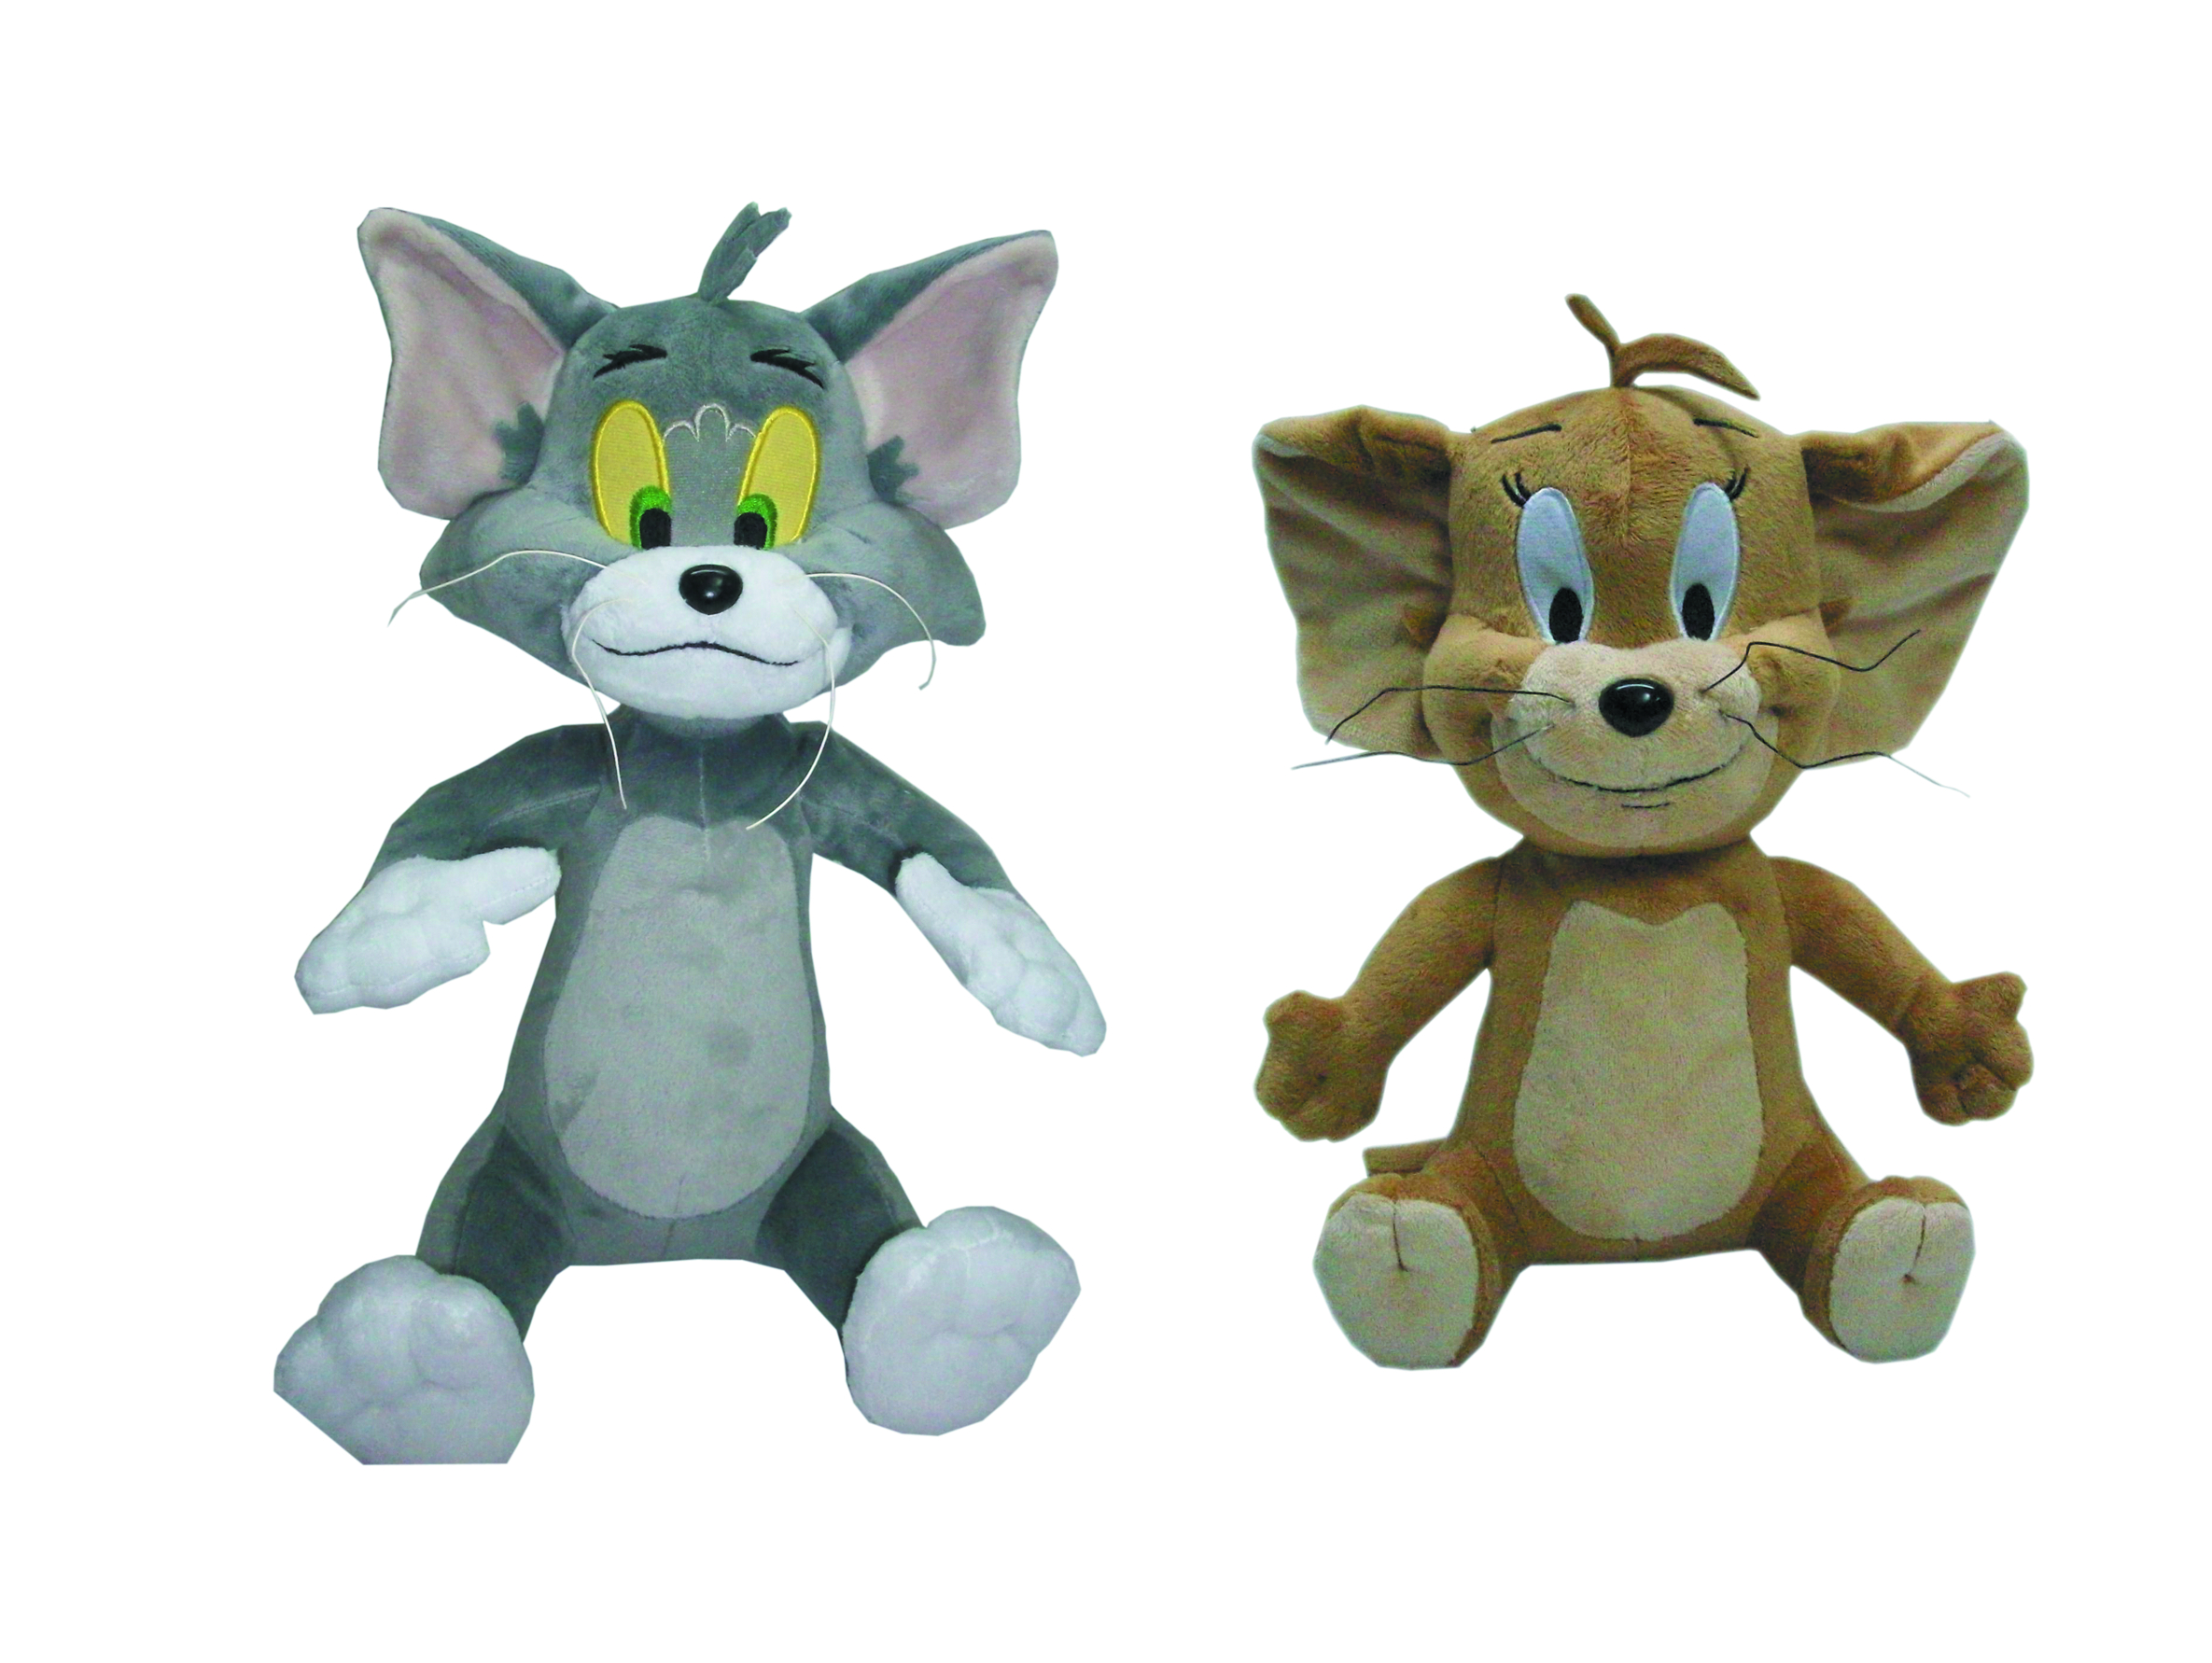 HANNA BARBERA TOM & JERRY 12-IN PLUSH DLX SET